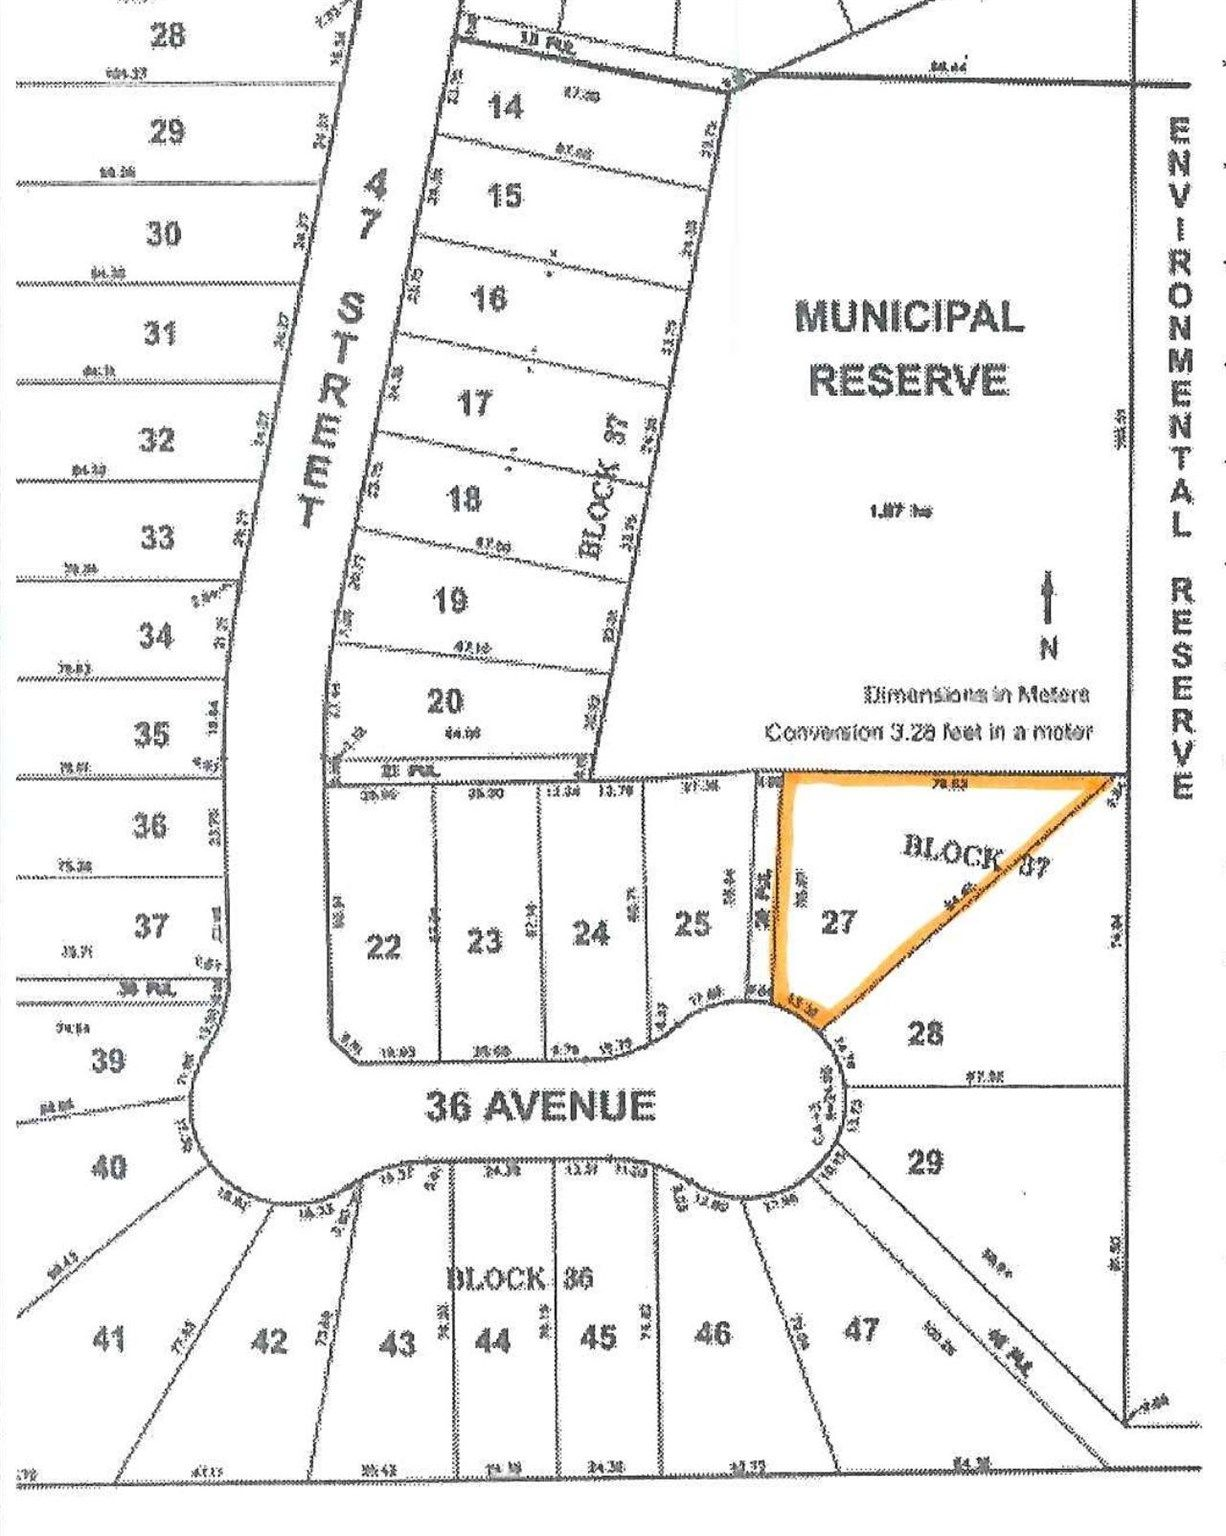 Main Photo: 4606 36 Avenue: Gibbons Vacant Lot for sale : MLS®# E4258152